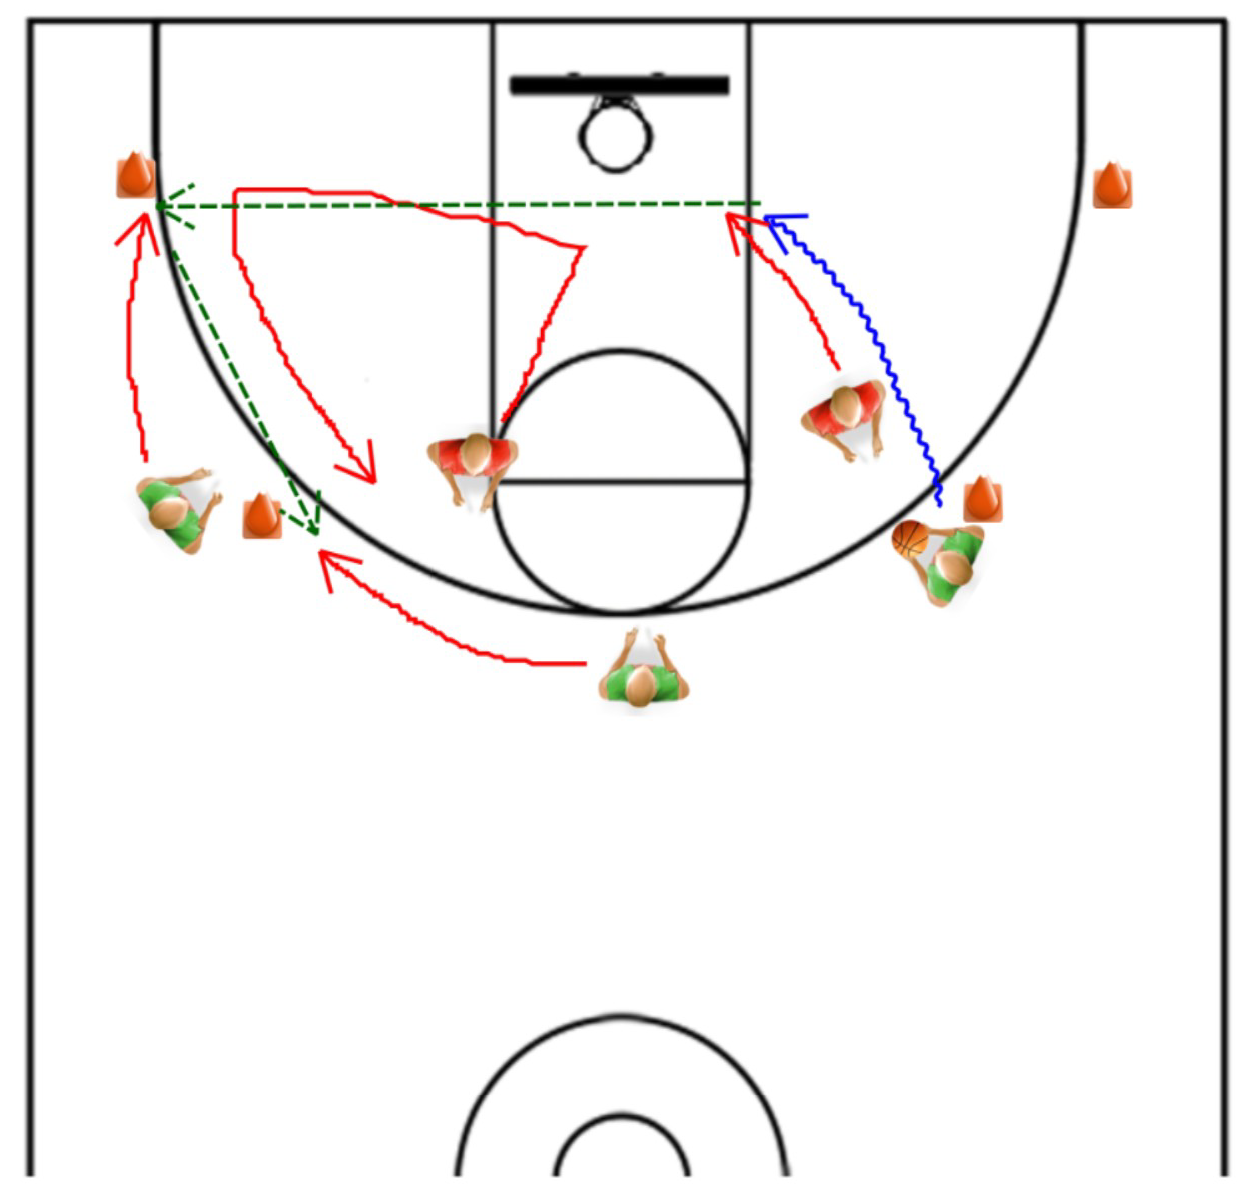 an analysis of the fundamentals of basketball defense This is an excerpt from winning basketball fundamentals by lee rose closing out in general, the following drills are a solid way to reinforce the four cs of individual defense begin with the understanding that the offensive player has the advantage because the defensive player is going to close out to the high side.